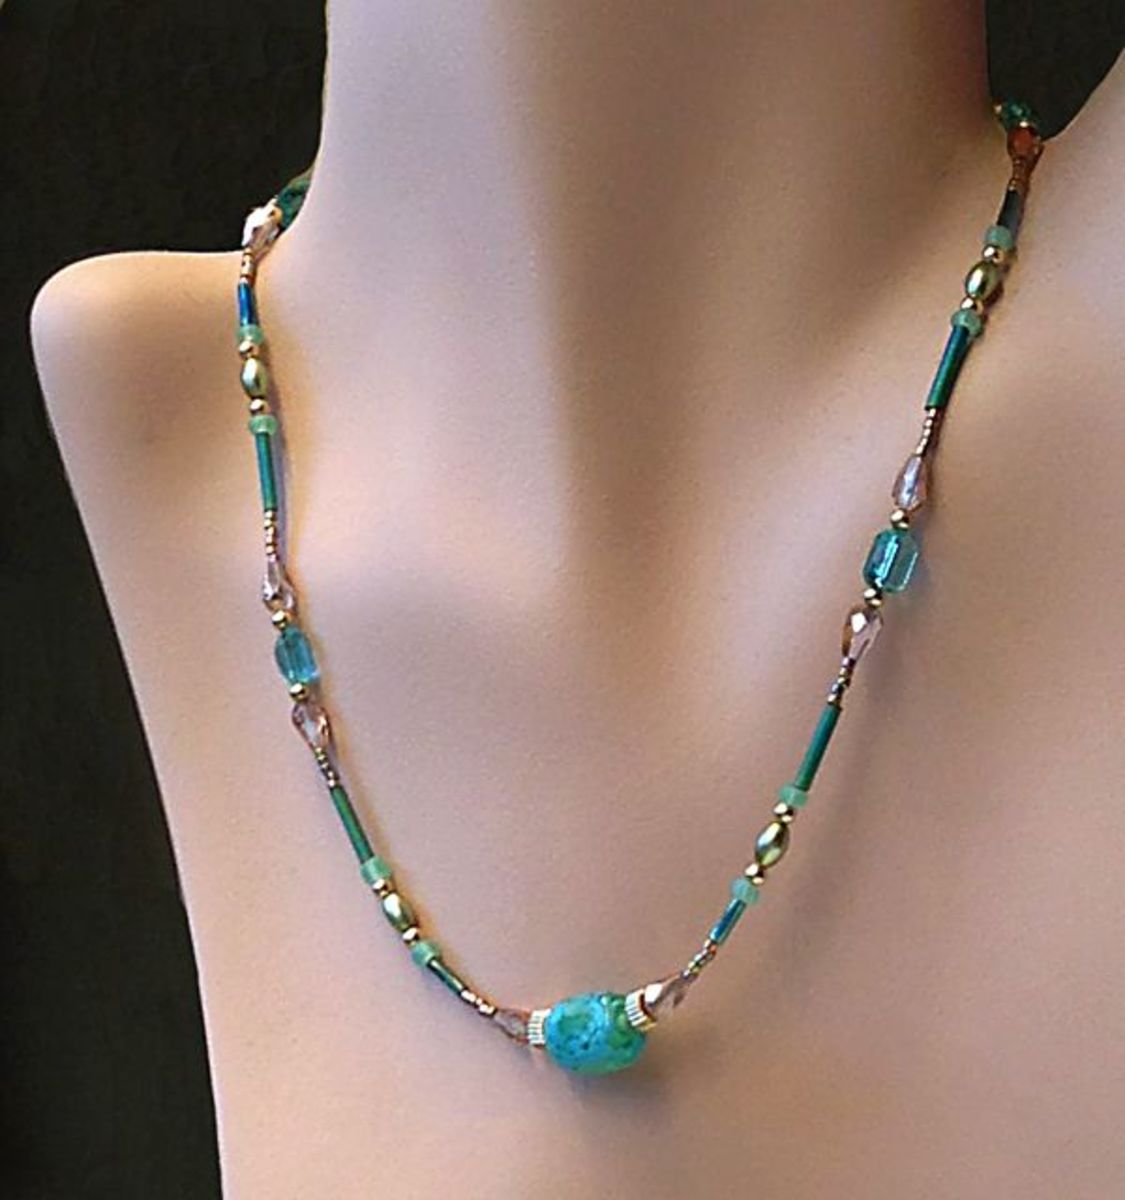 Beaded eyeglass chain worn as a necklace